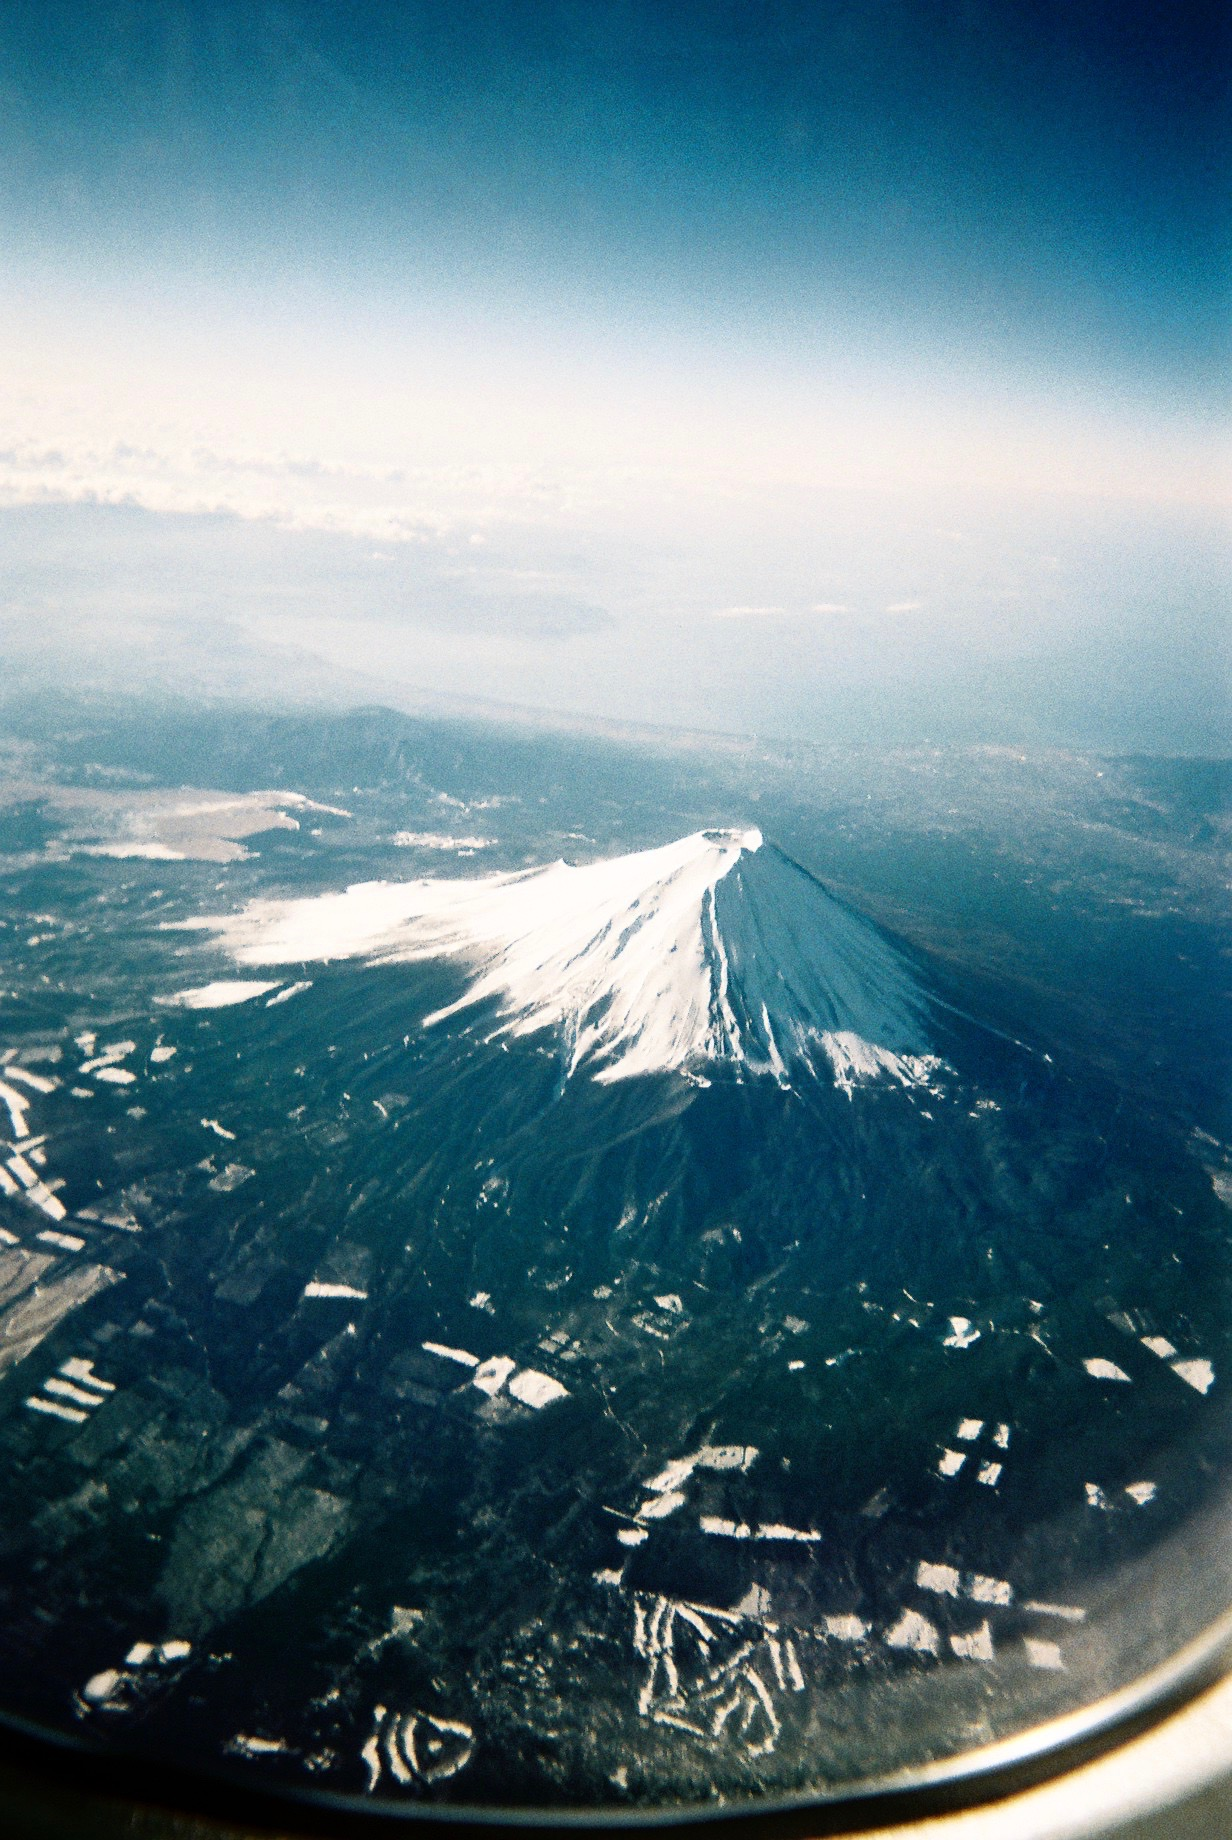 mount-fuji-tokyo-dandy-disposable-camera-commons-and-sense